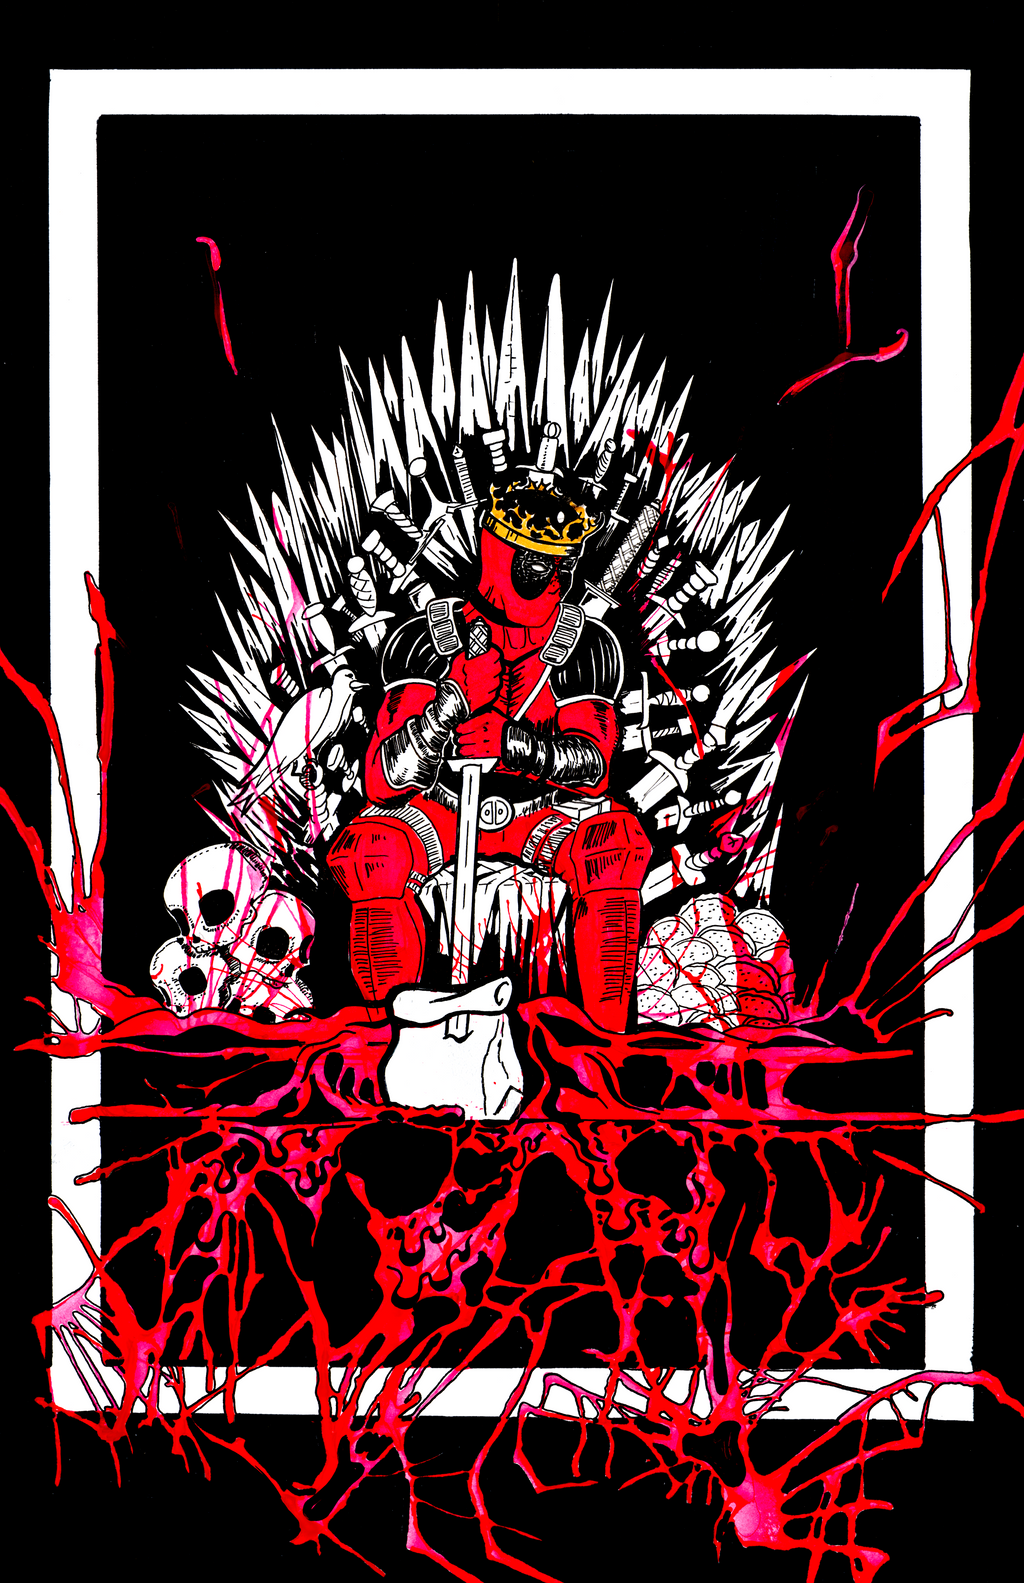 King deadpool on the iron throne by vitmncisill on deviantart for Iron throne painting